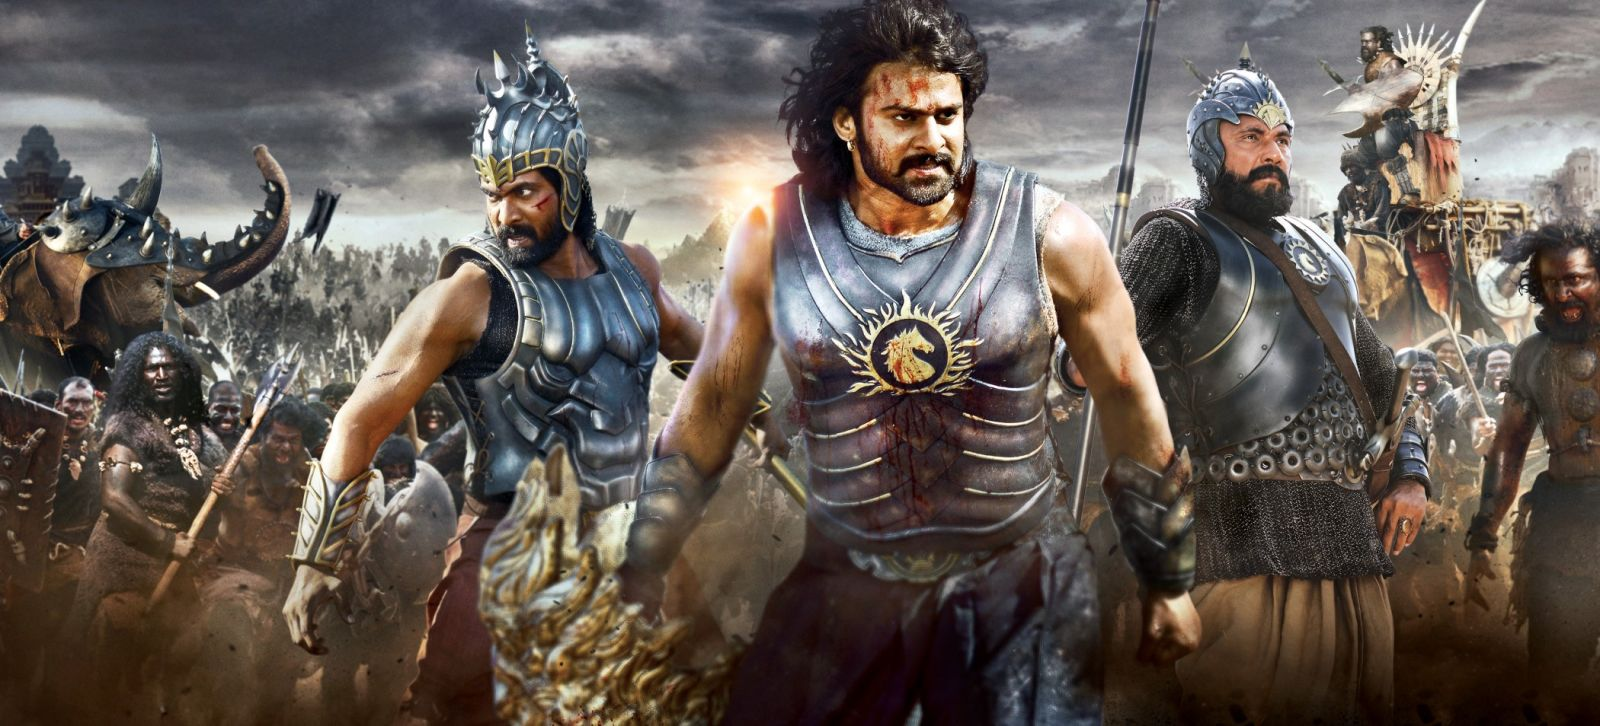 Image result for baahubali 2 hd